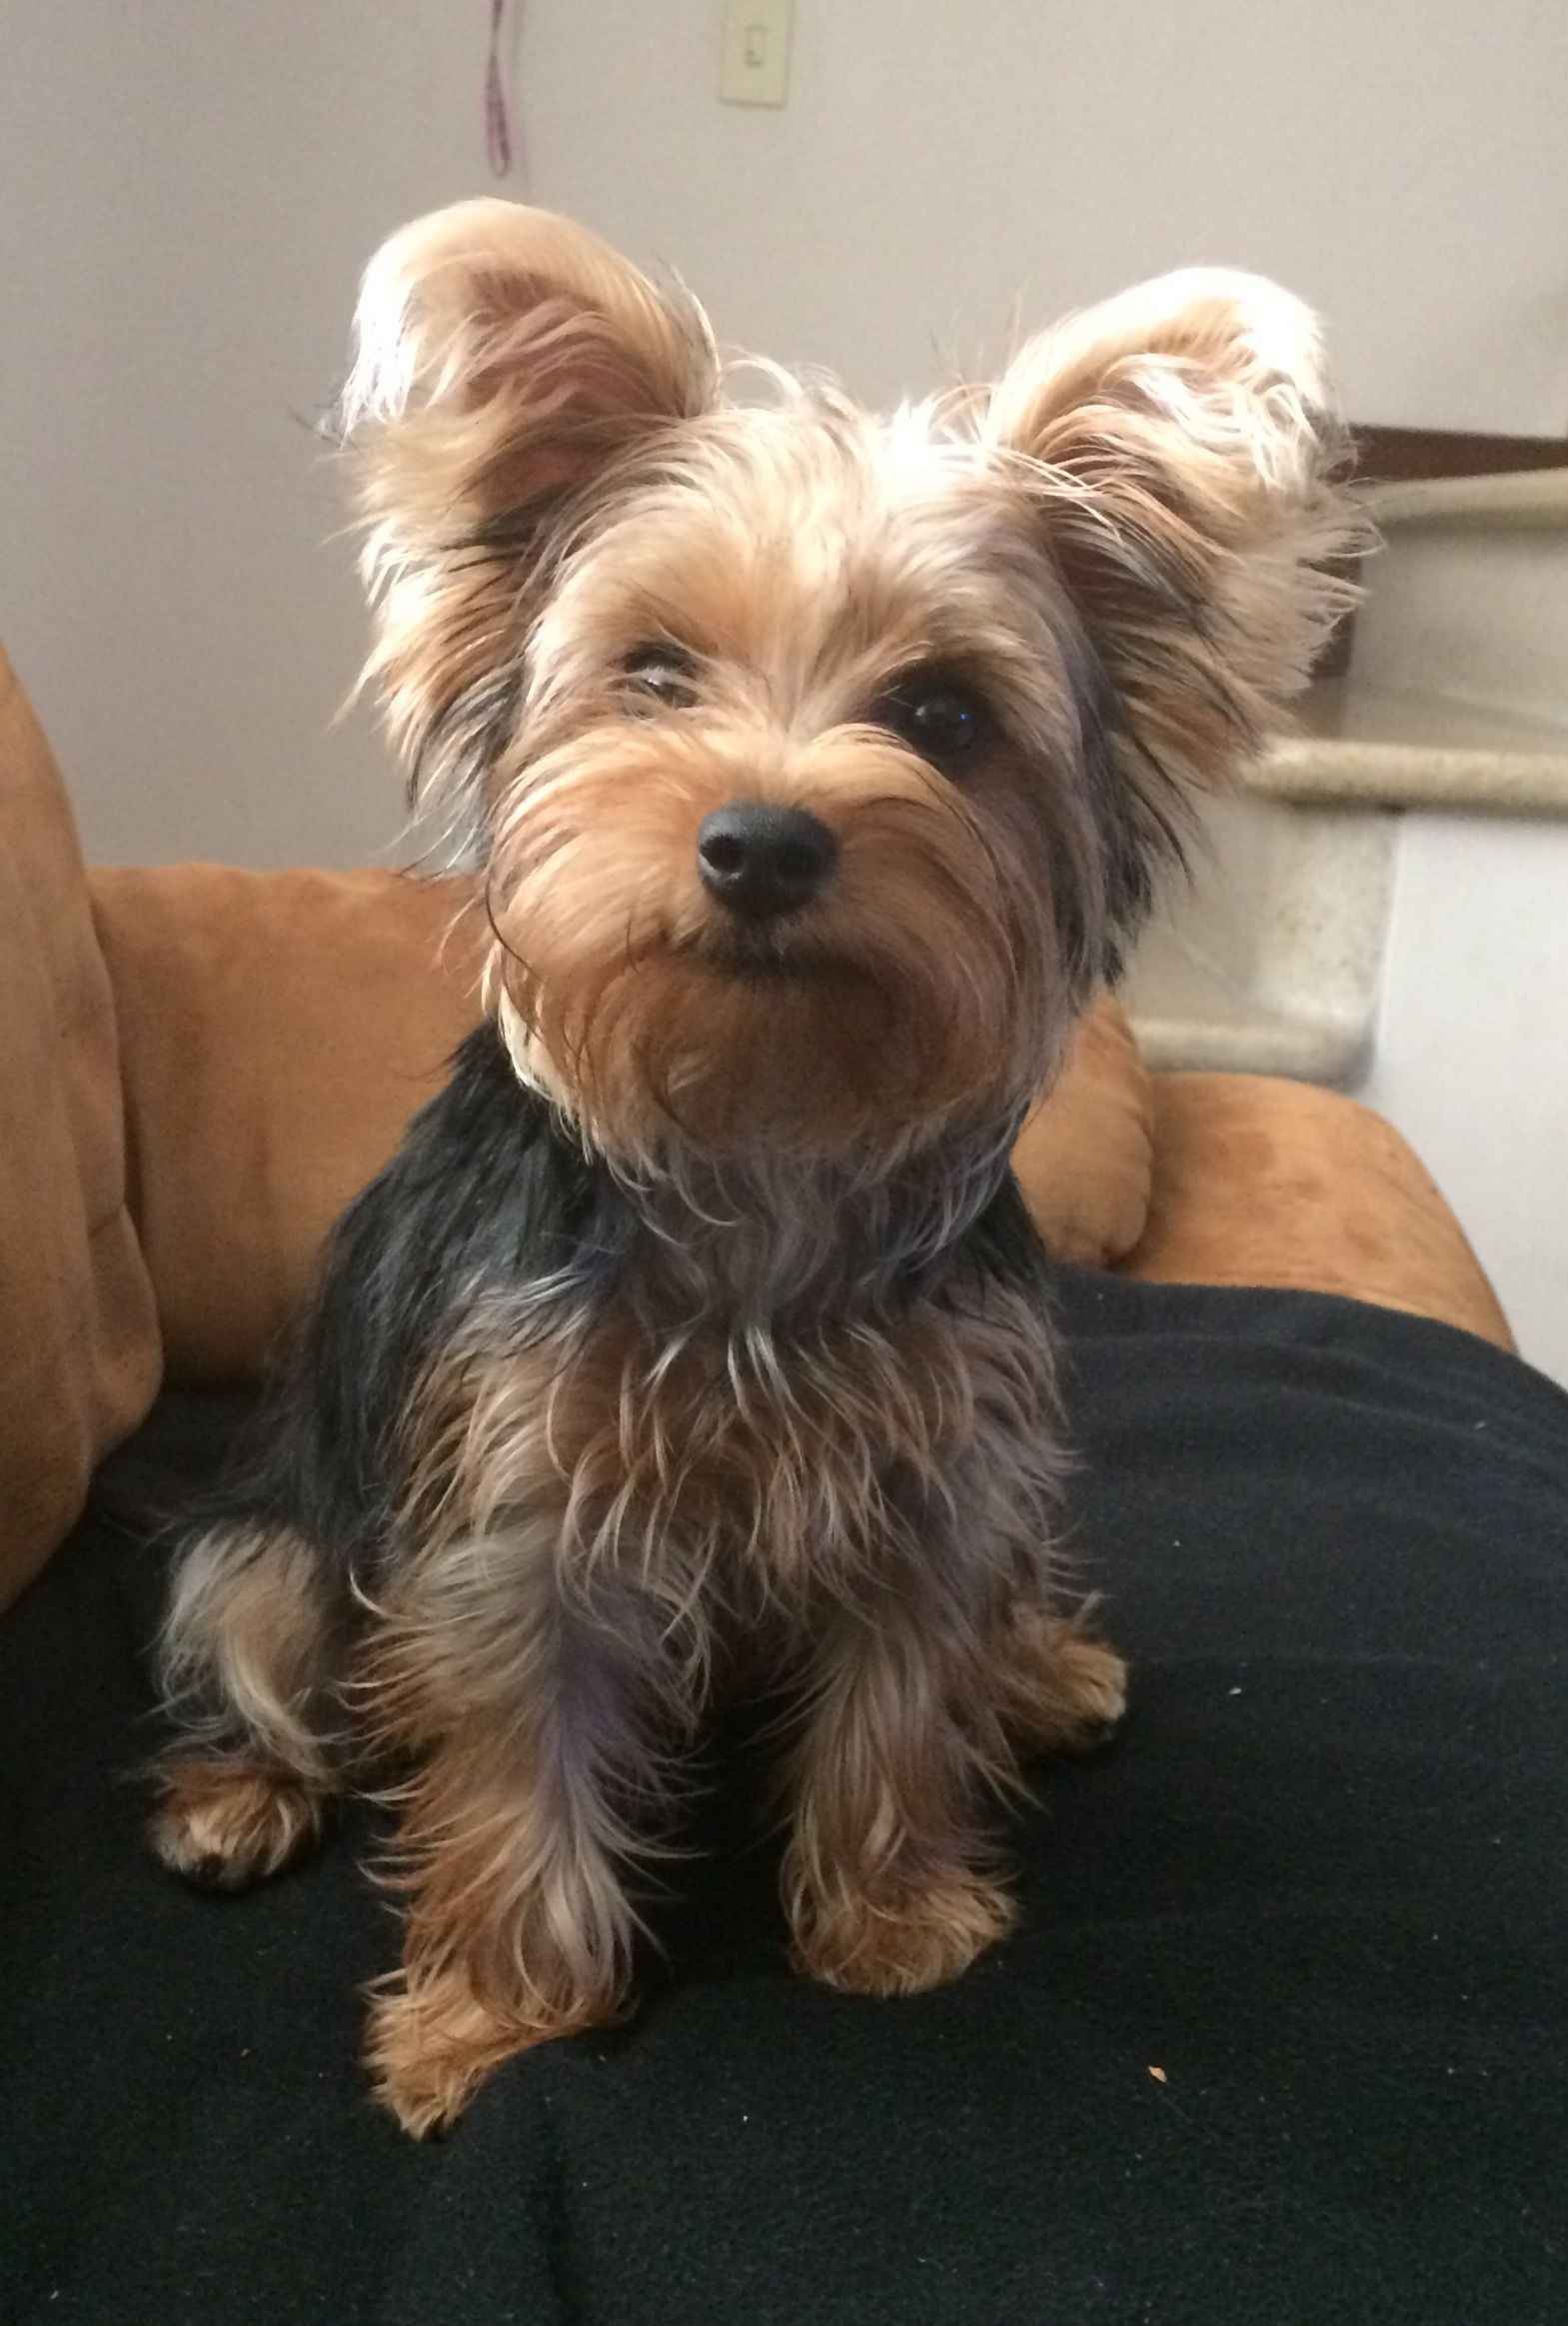 Pin By Marissa Maldonado On Just To Cute Yorkshire Terrier Yorkshire Terrier Puppies Pitbull Puppies